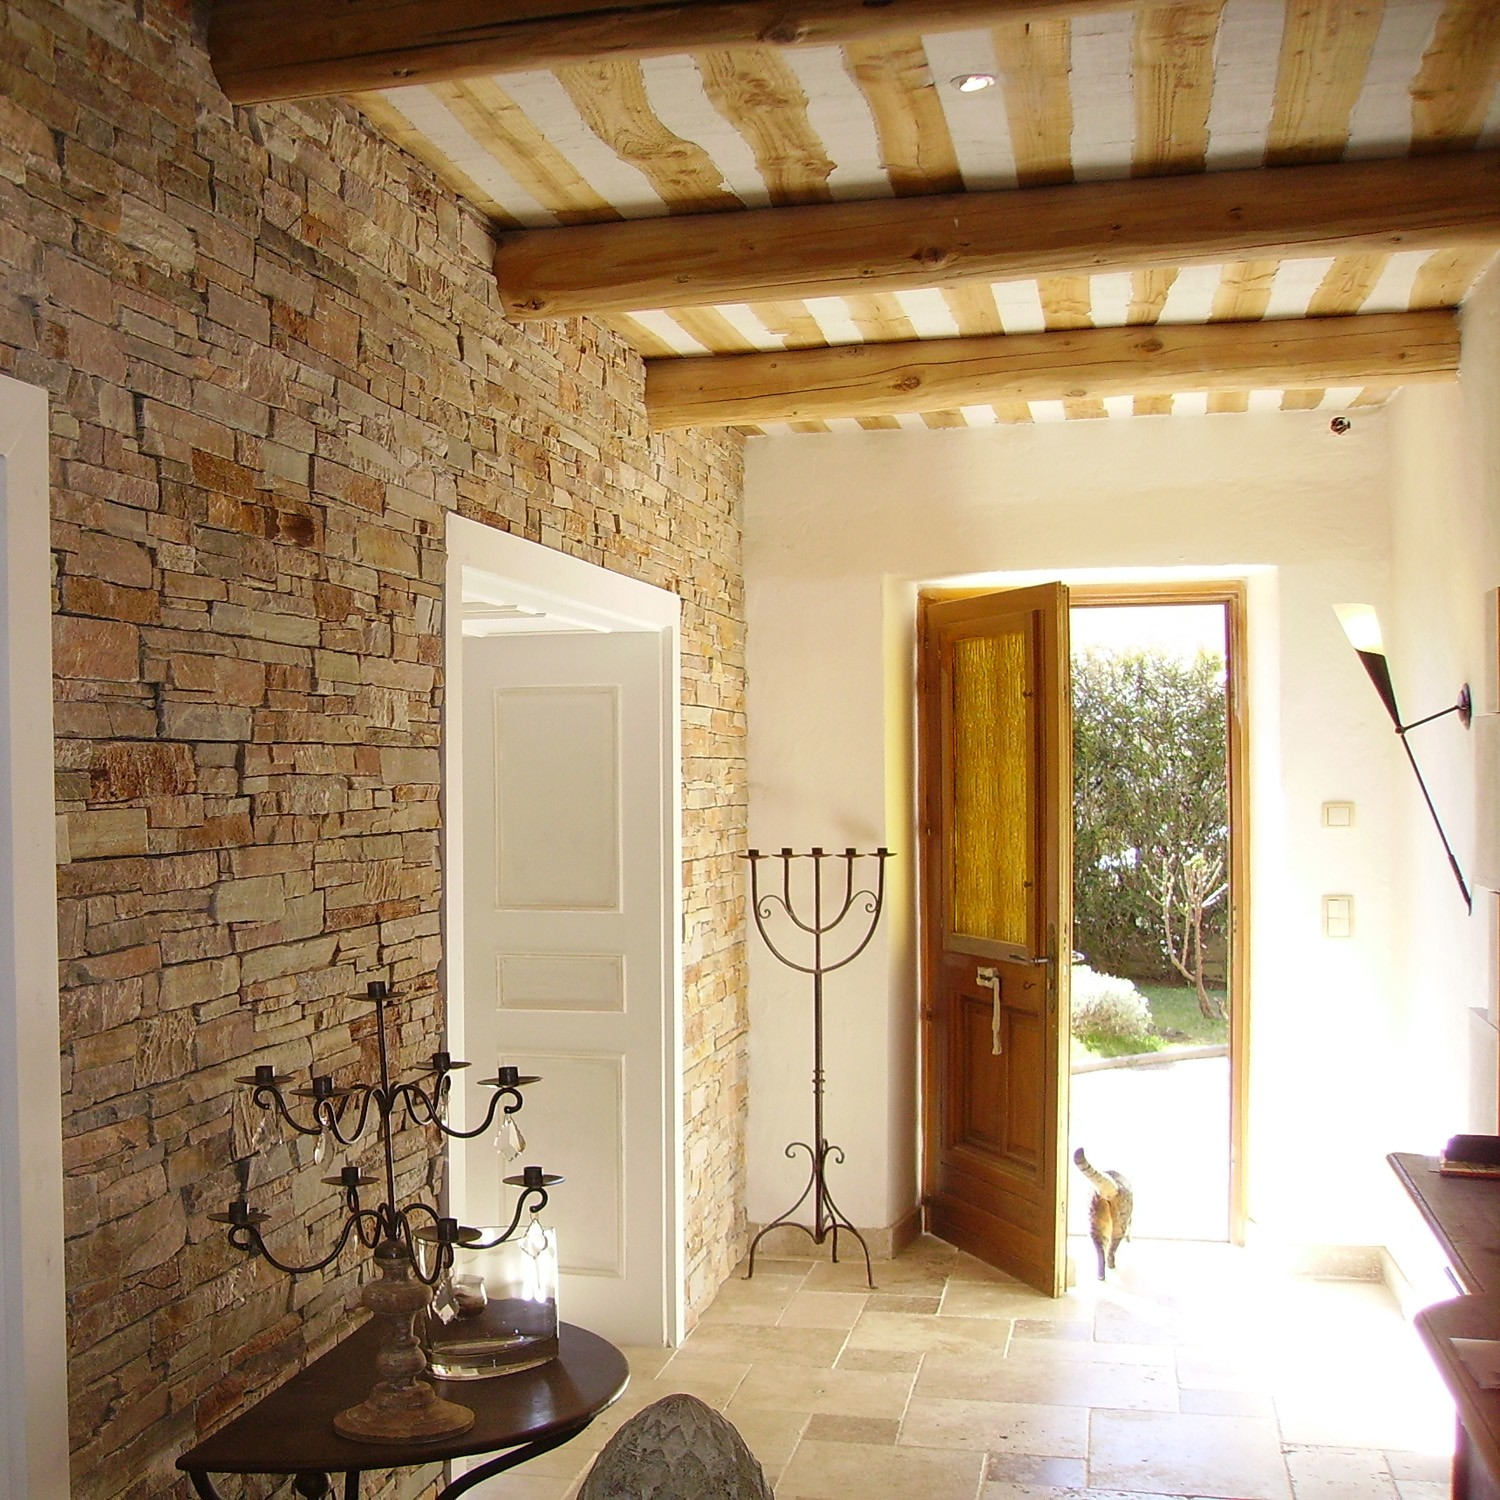 D coration interieur maison pierre exemples d 39 am nagements for Design decoration interieur